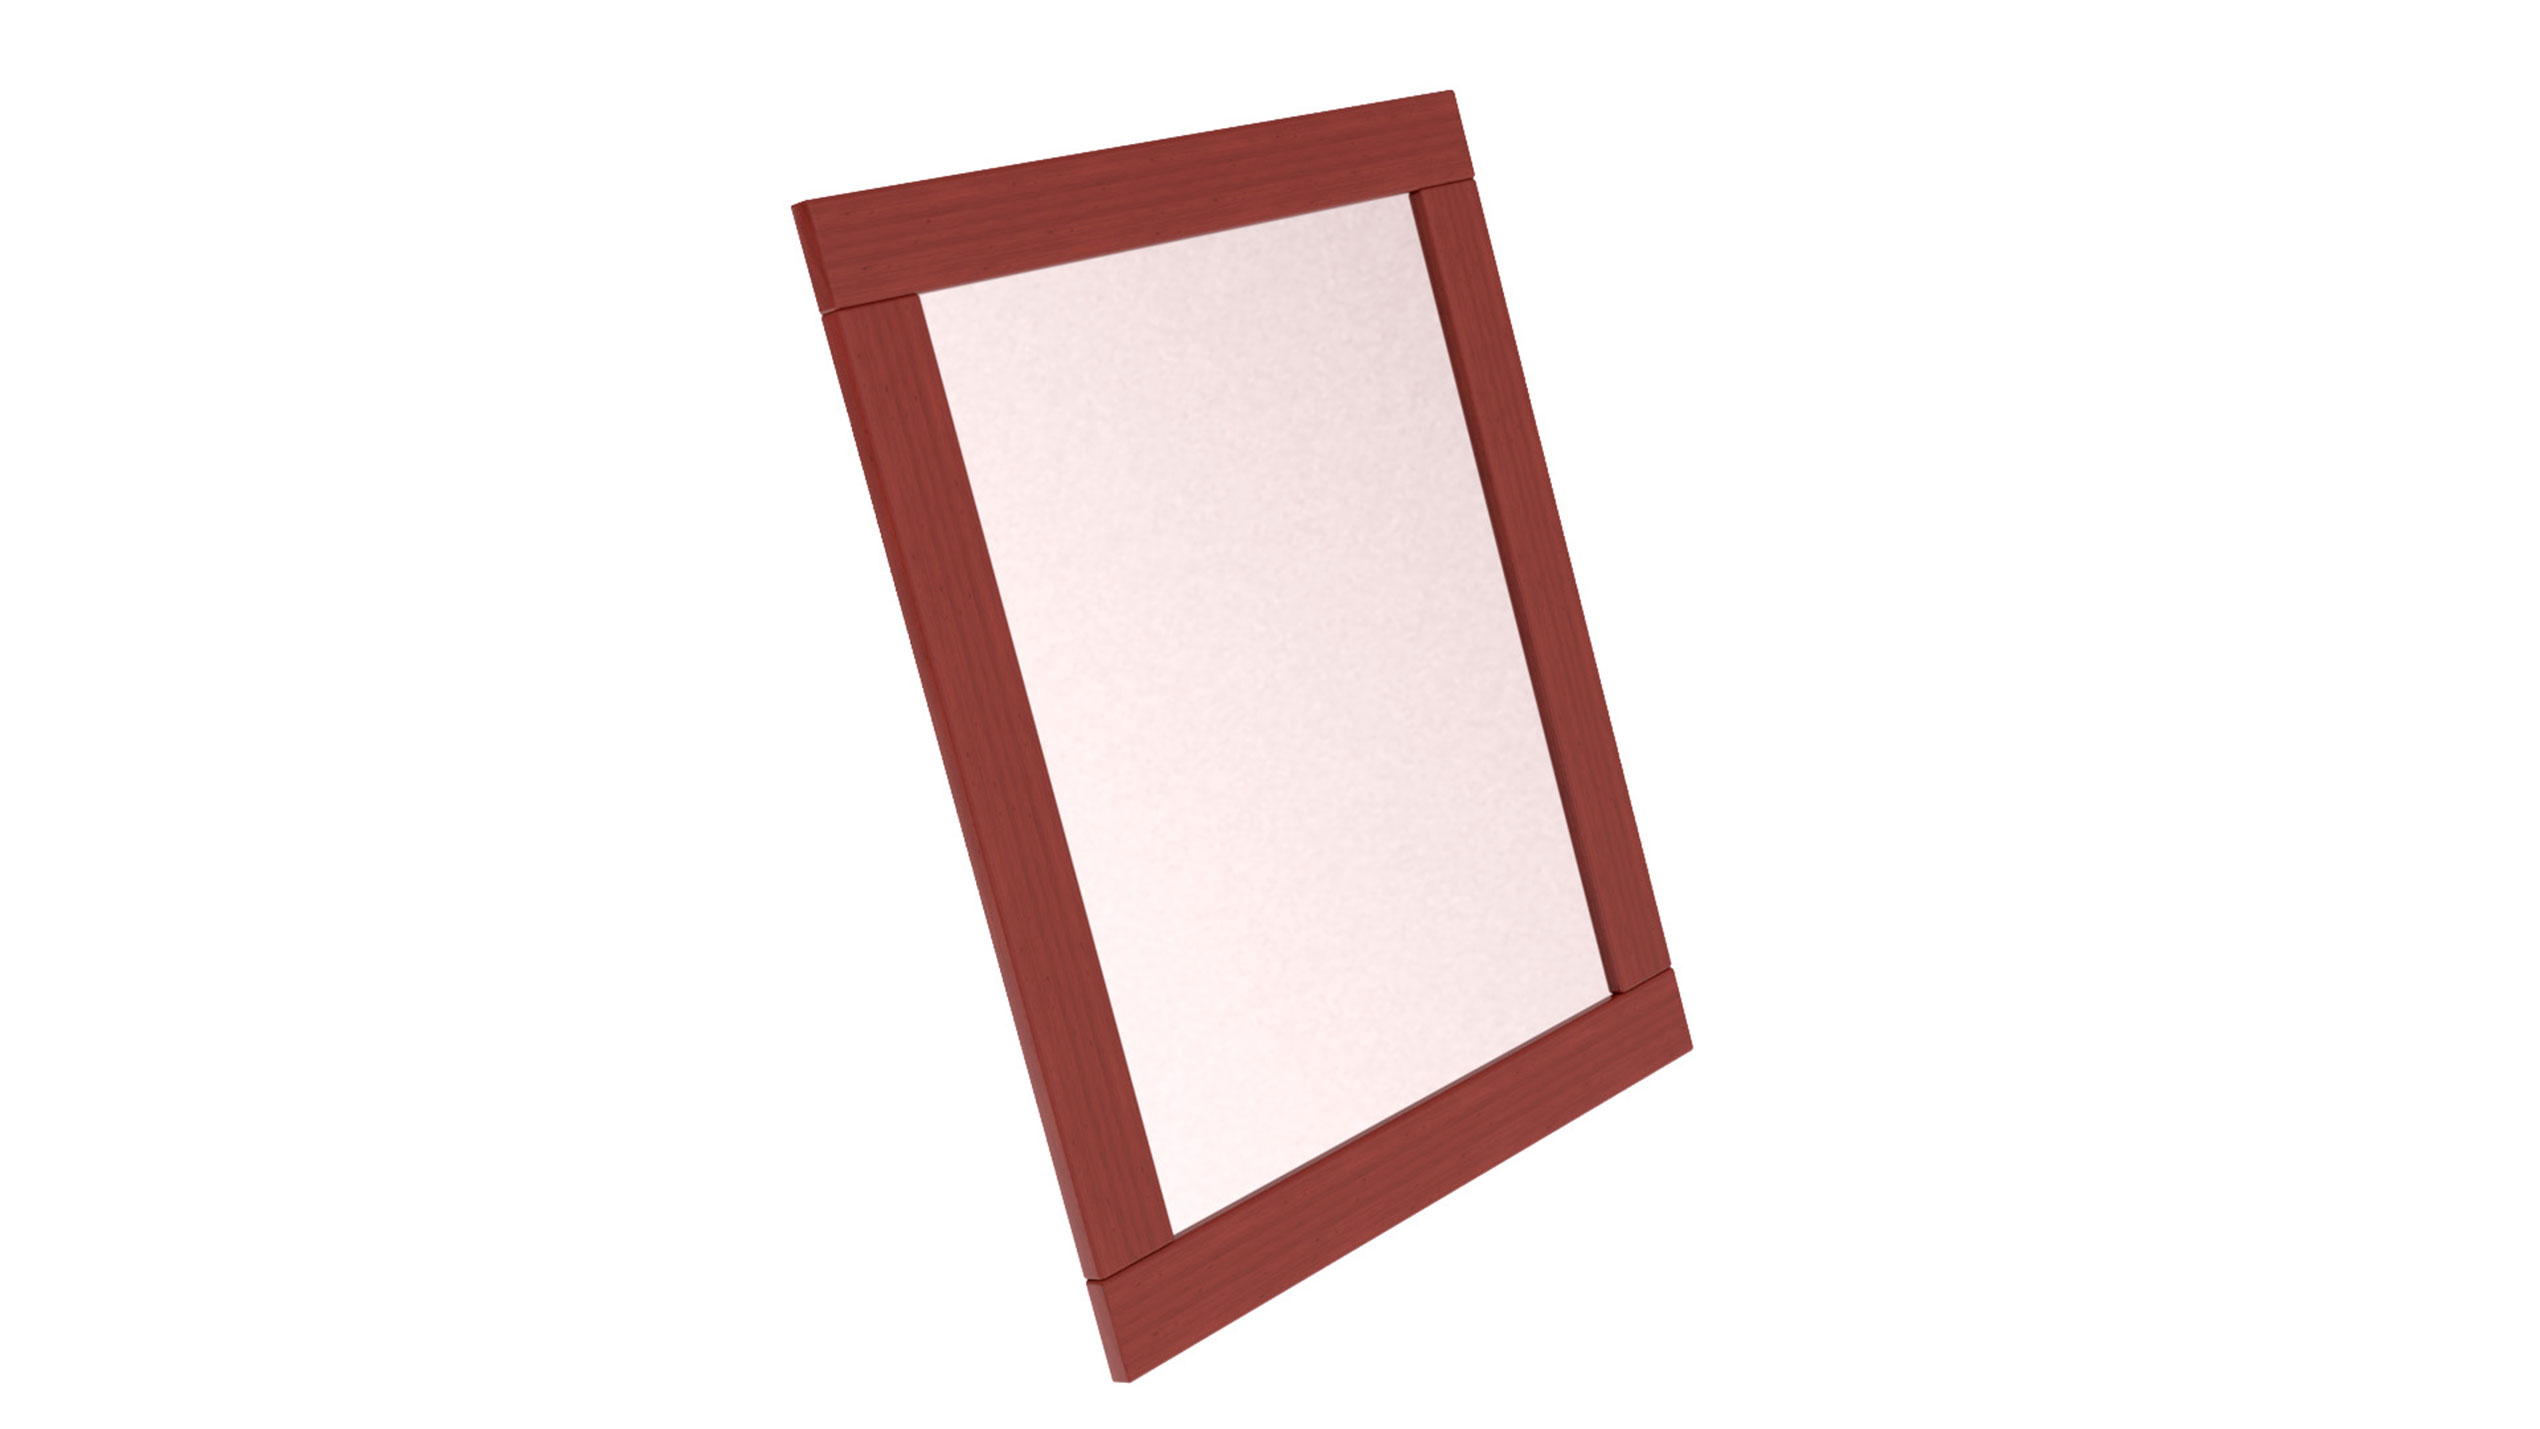 Waldeck mirror from Quagga Designs